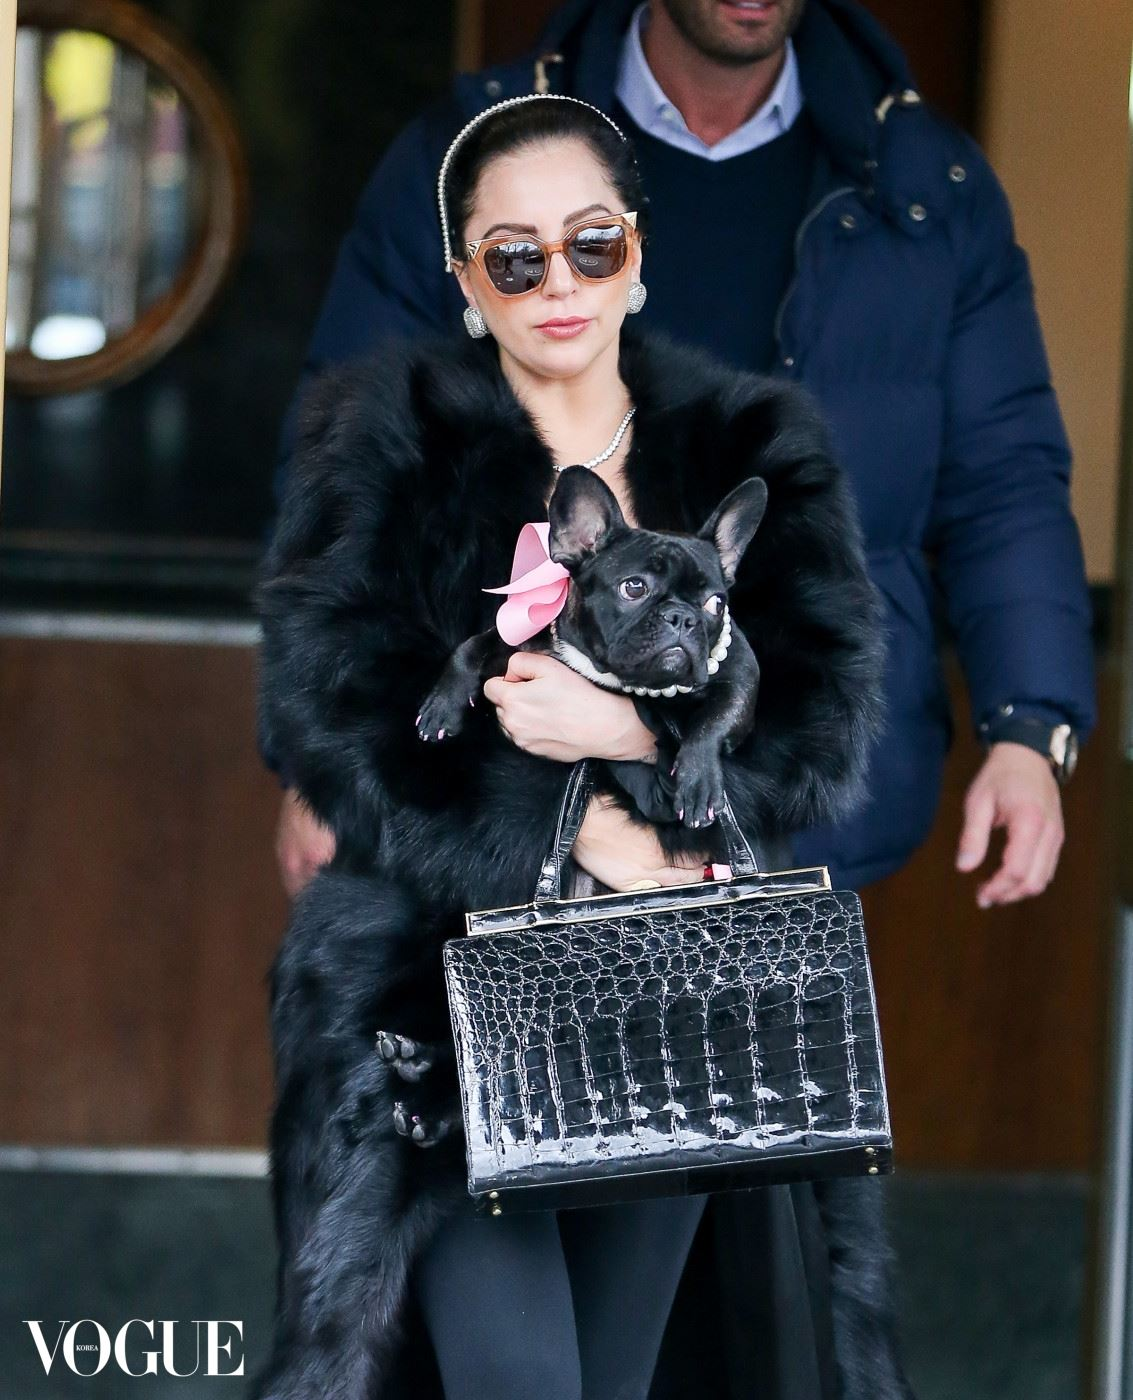 Lady Gaga and her dog Asia spotted matching headbands while their leaving in New York City. Pictured: Lady Gaga Ref: SPL916702  221214   Picture by: Santi/Splash News Splash News and Pictures Los Angeles:310-821-2666 New York:212-619-2666 London:870-934-2666 photodesk@splashnews.com